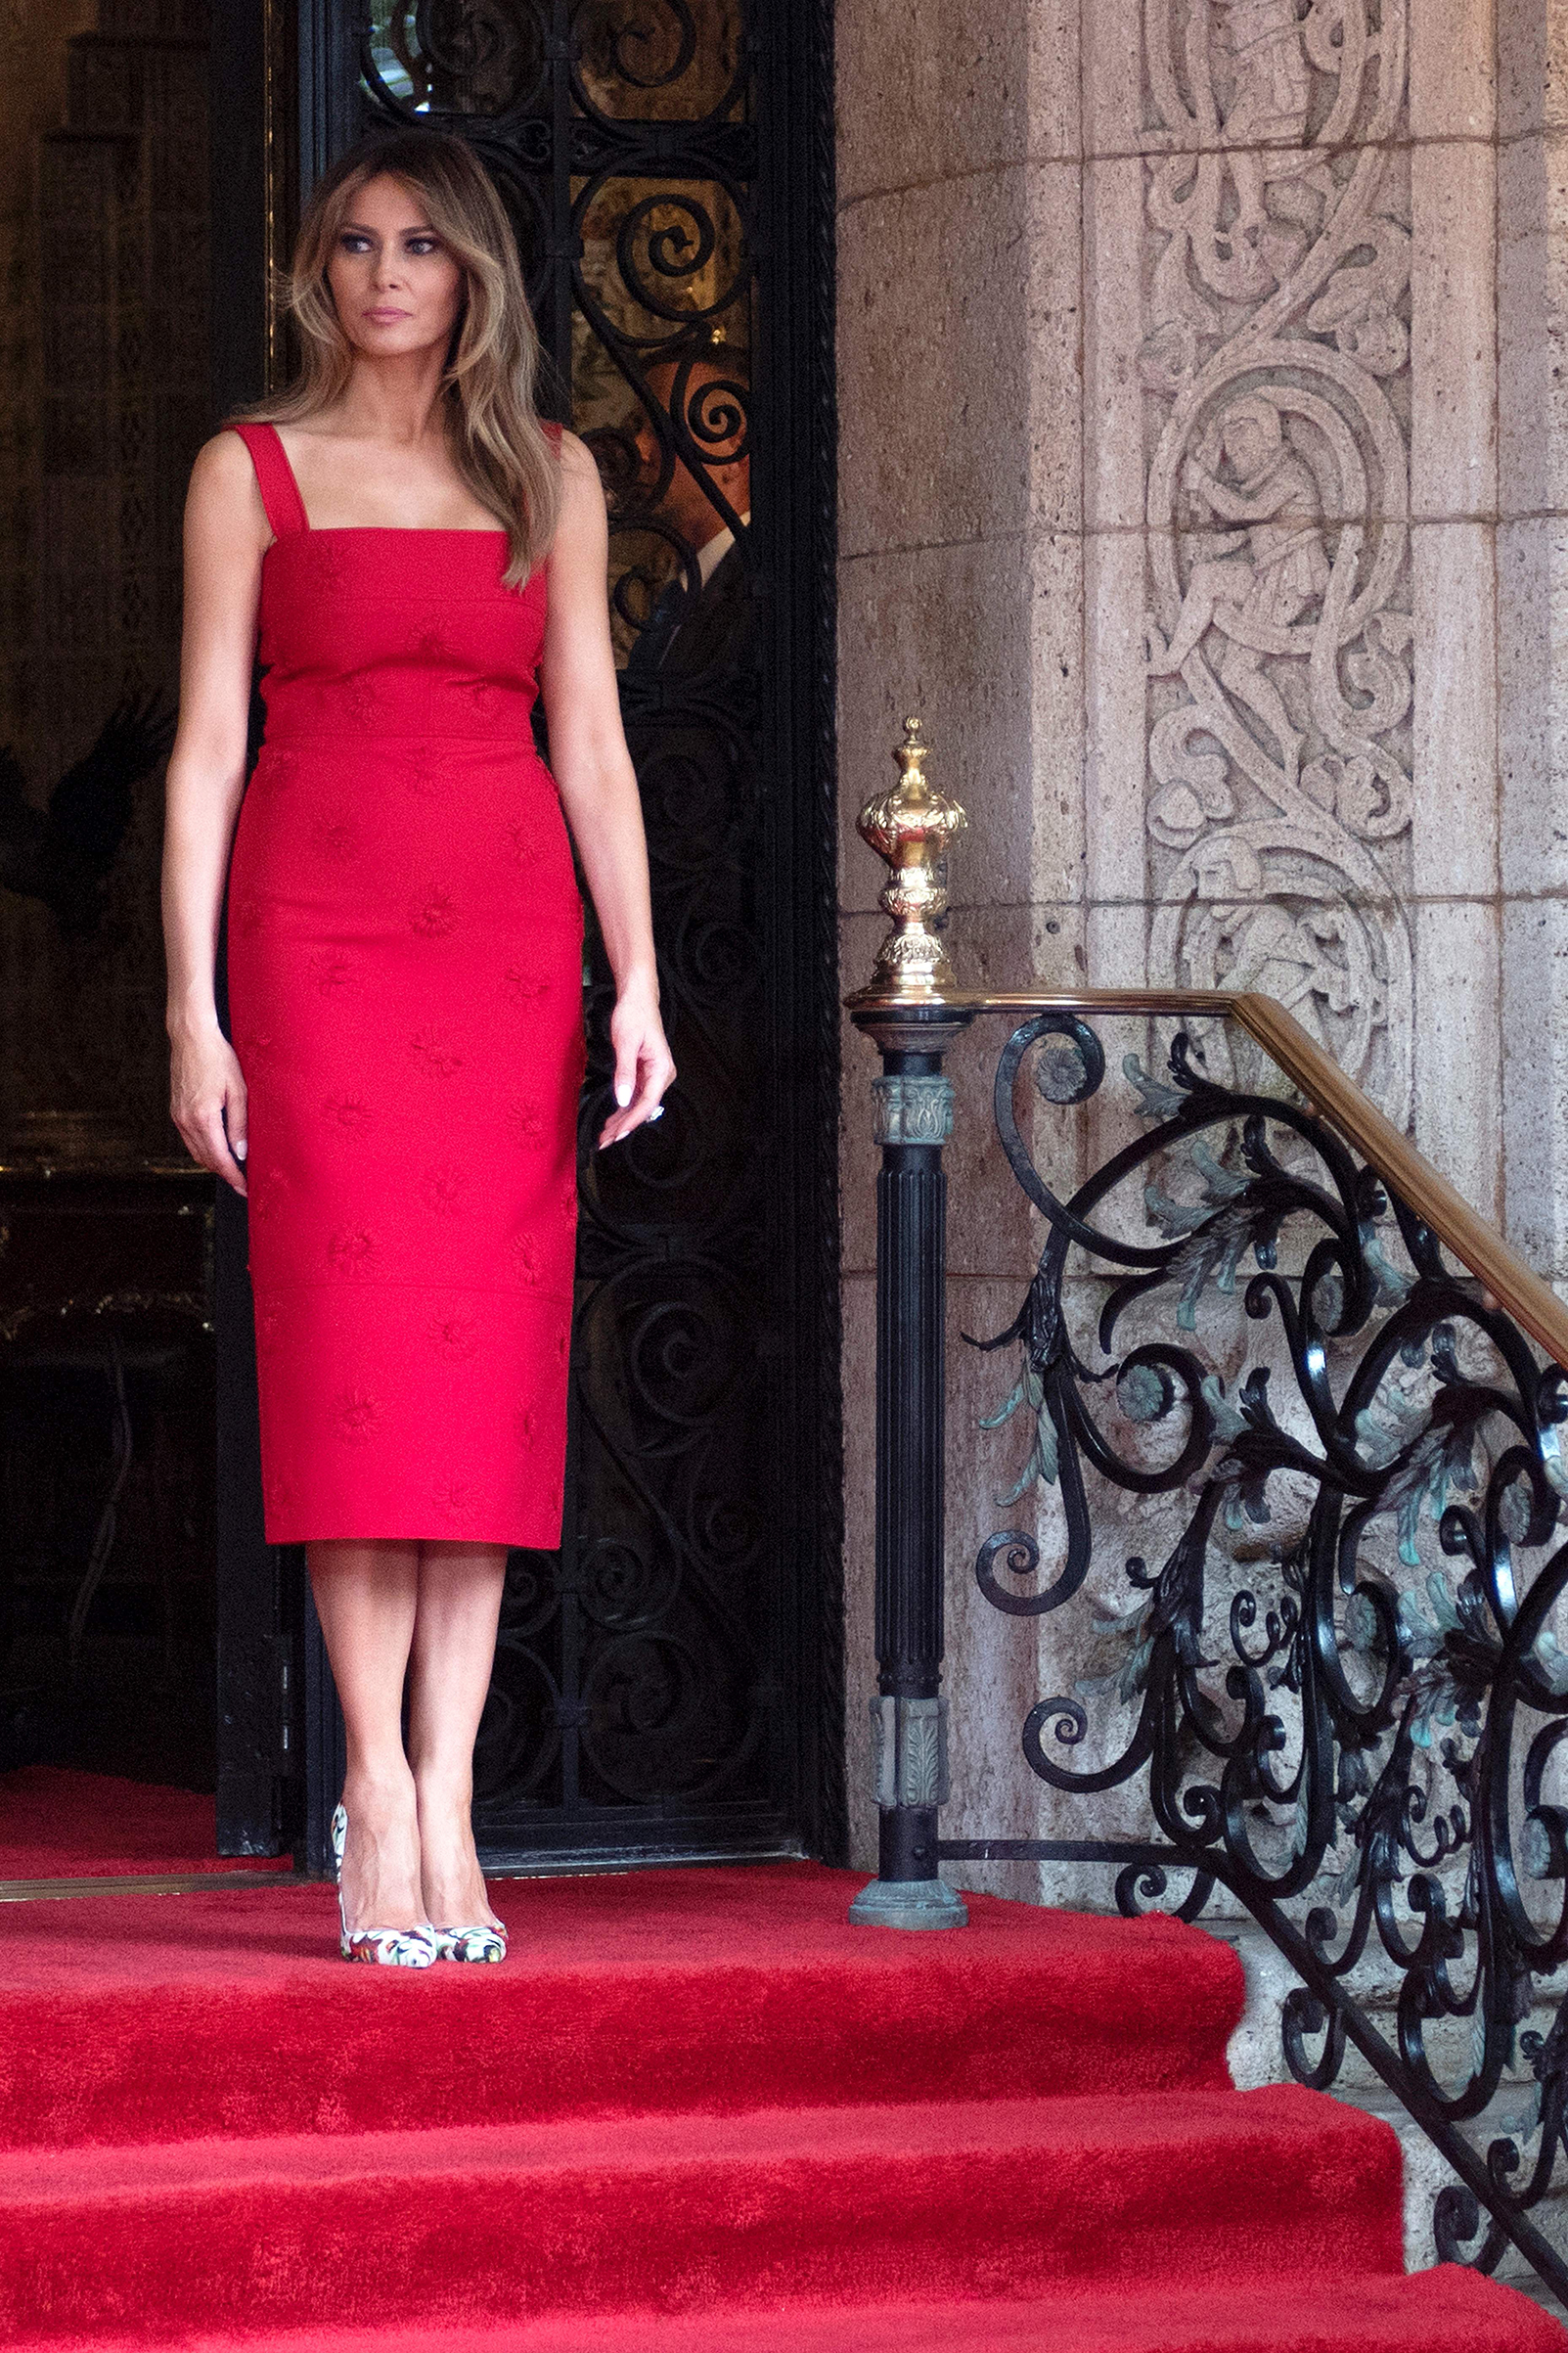 First lady Melania Trump wears a sleeveless red daisy-appliqué crepe midi dress by Valentino, awaits the arrival of Chinese President Xi Jinping and his wife Peng Liyuan at the Mar-a-Lago estate in West Palm Beach, Fla., on April 6, 2017.